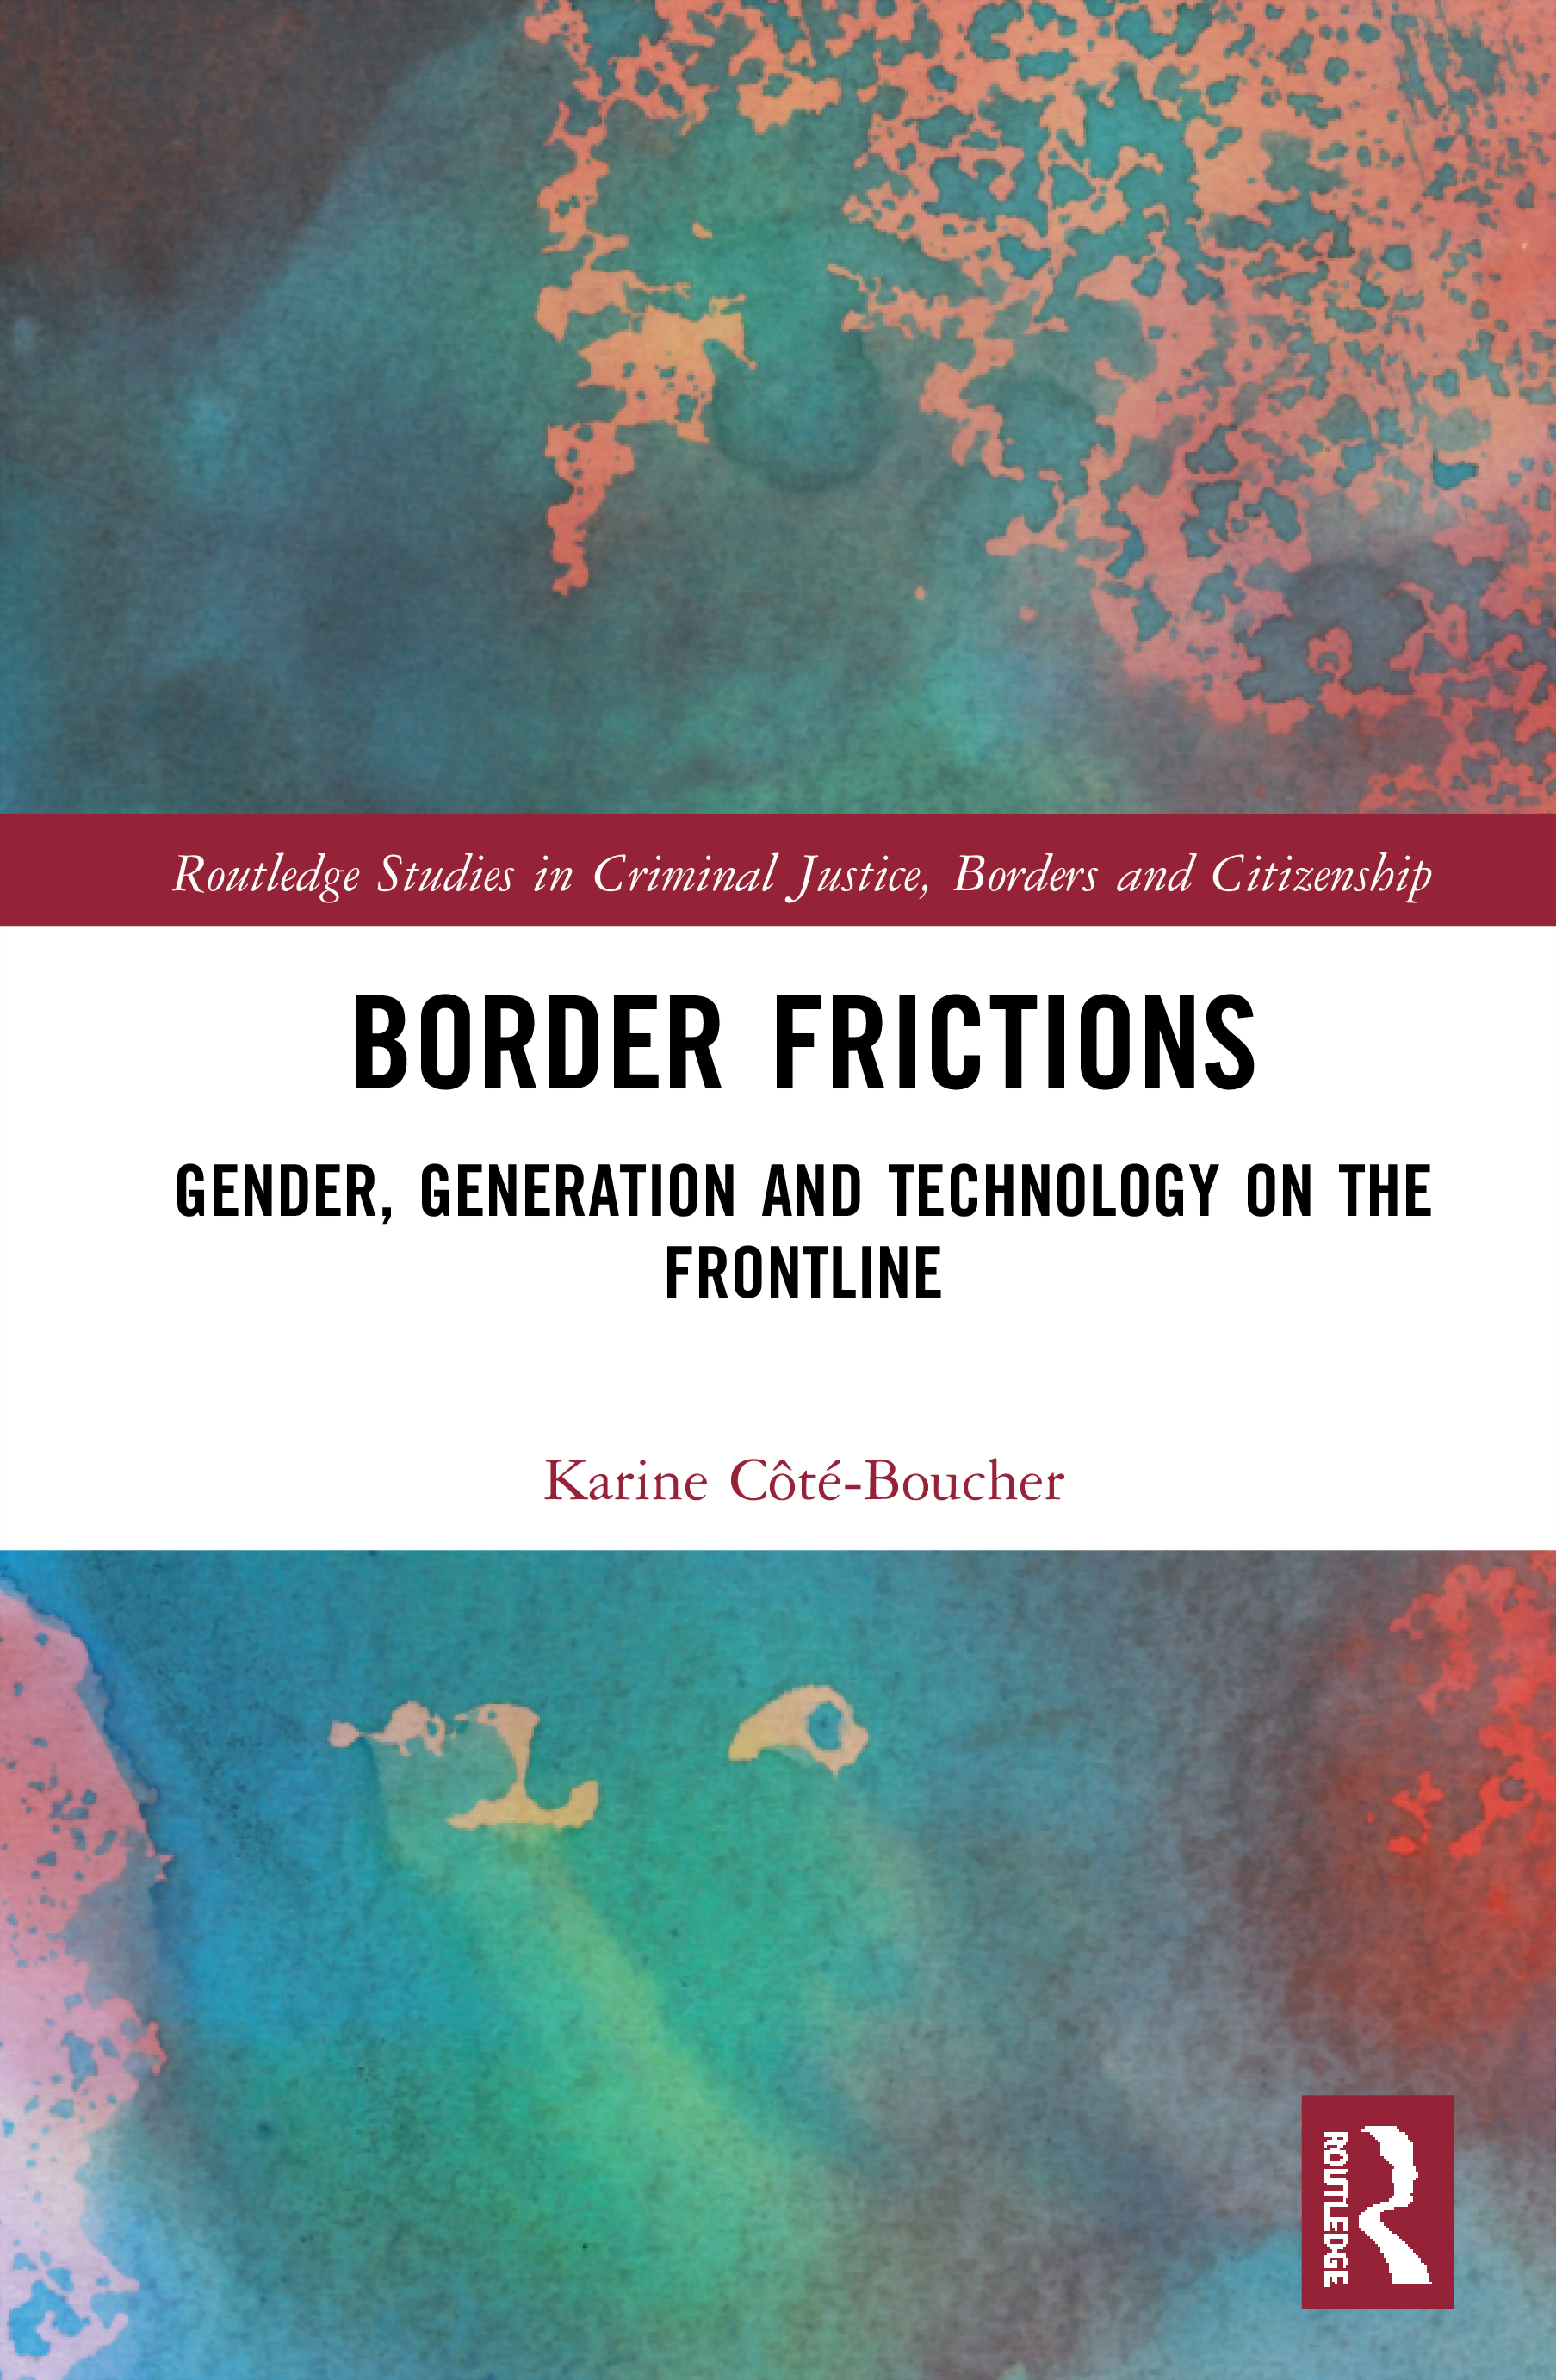 Border Frictions: Gender, Generation and Technology on the Frontline book cover